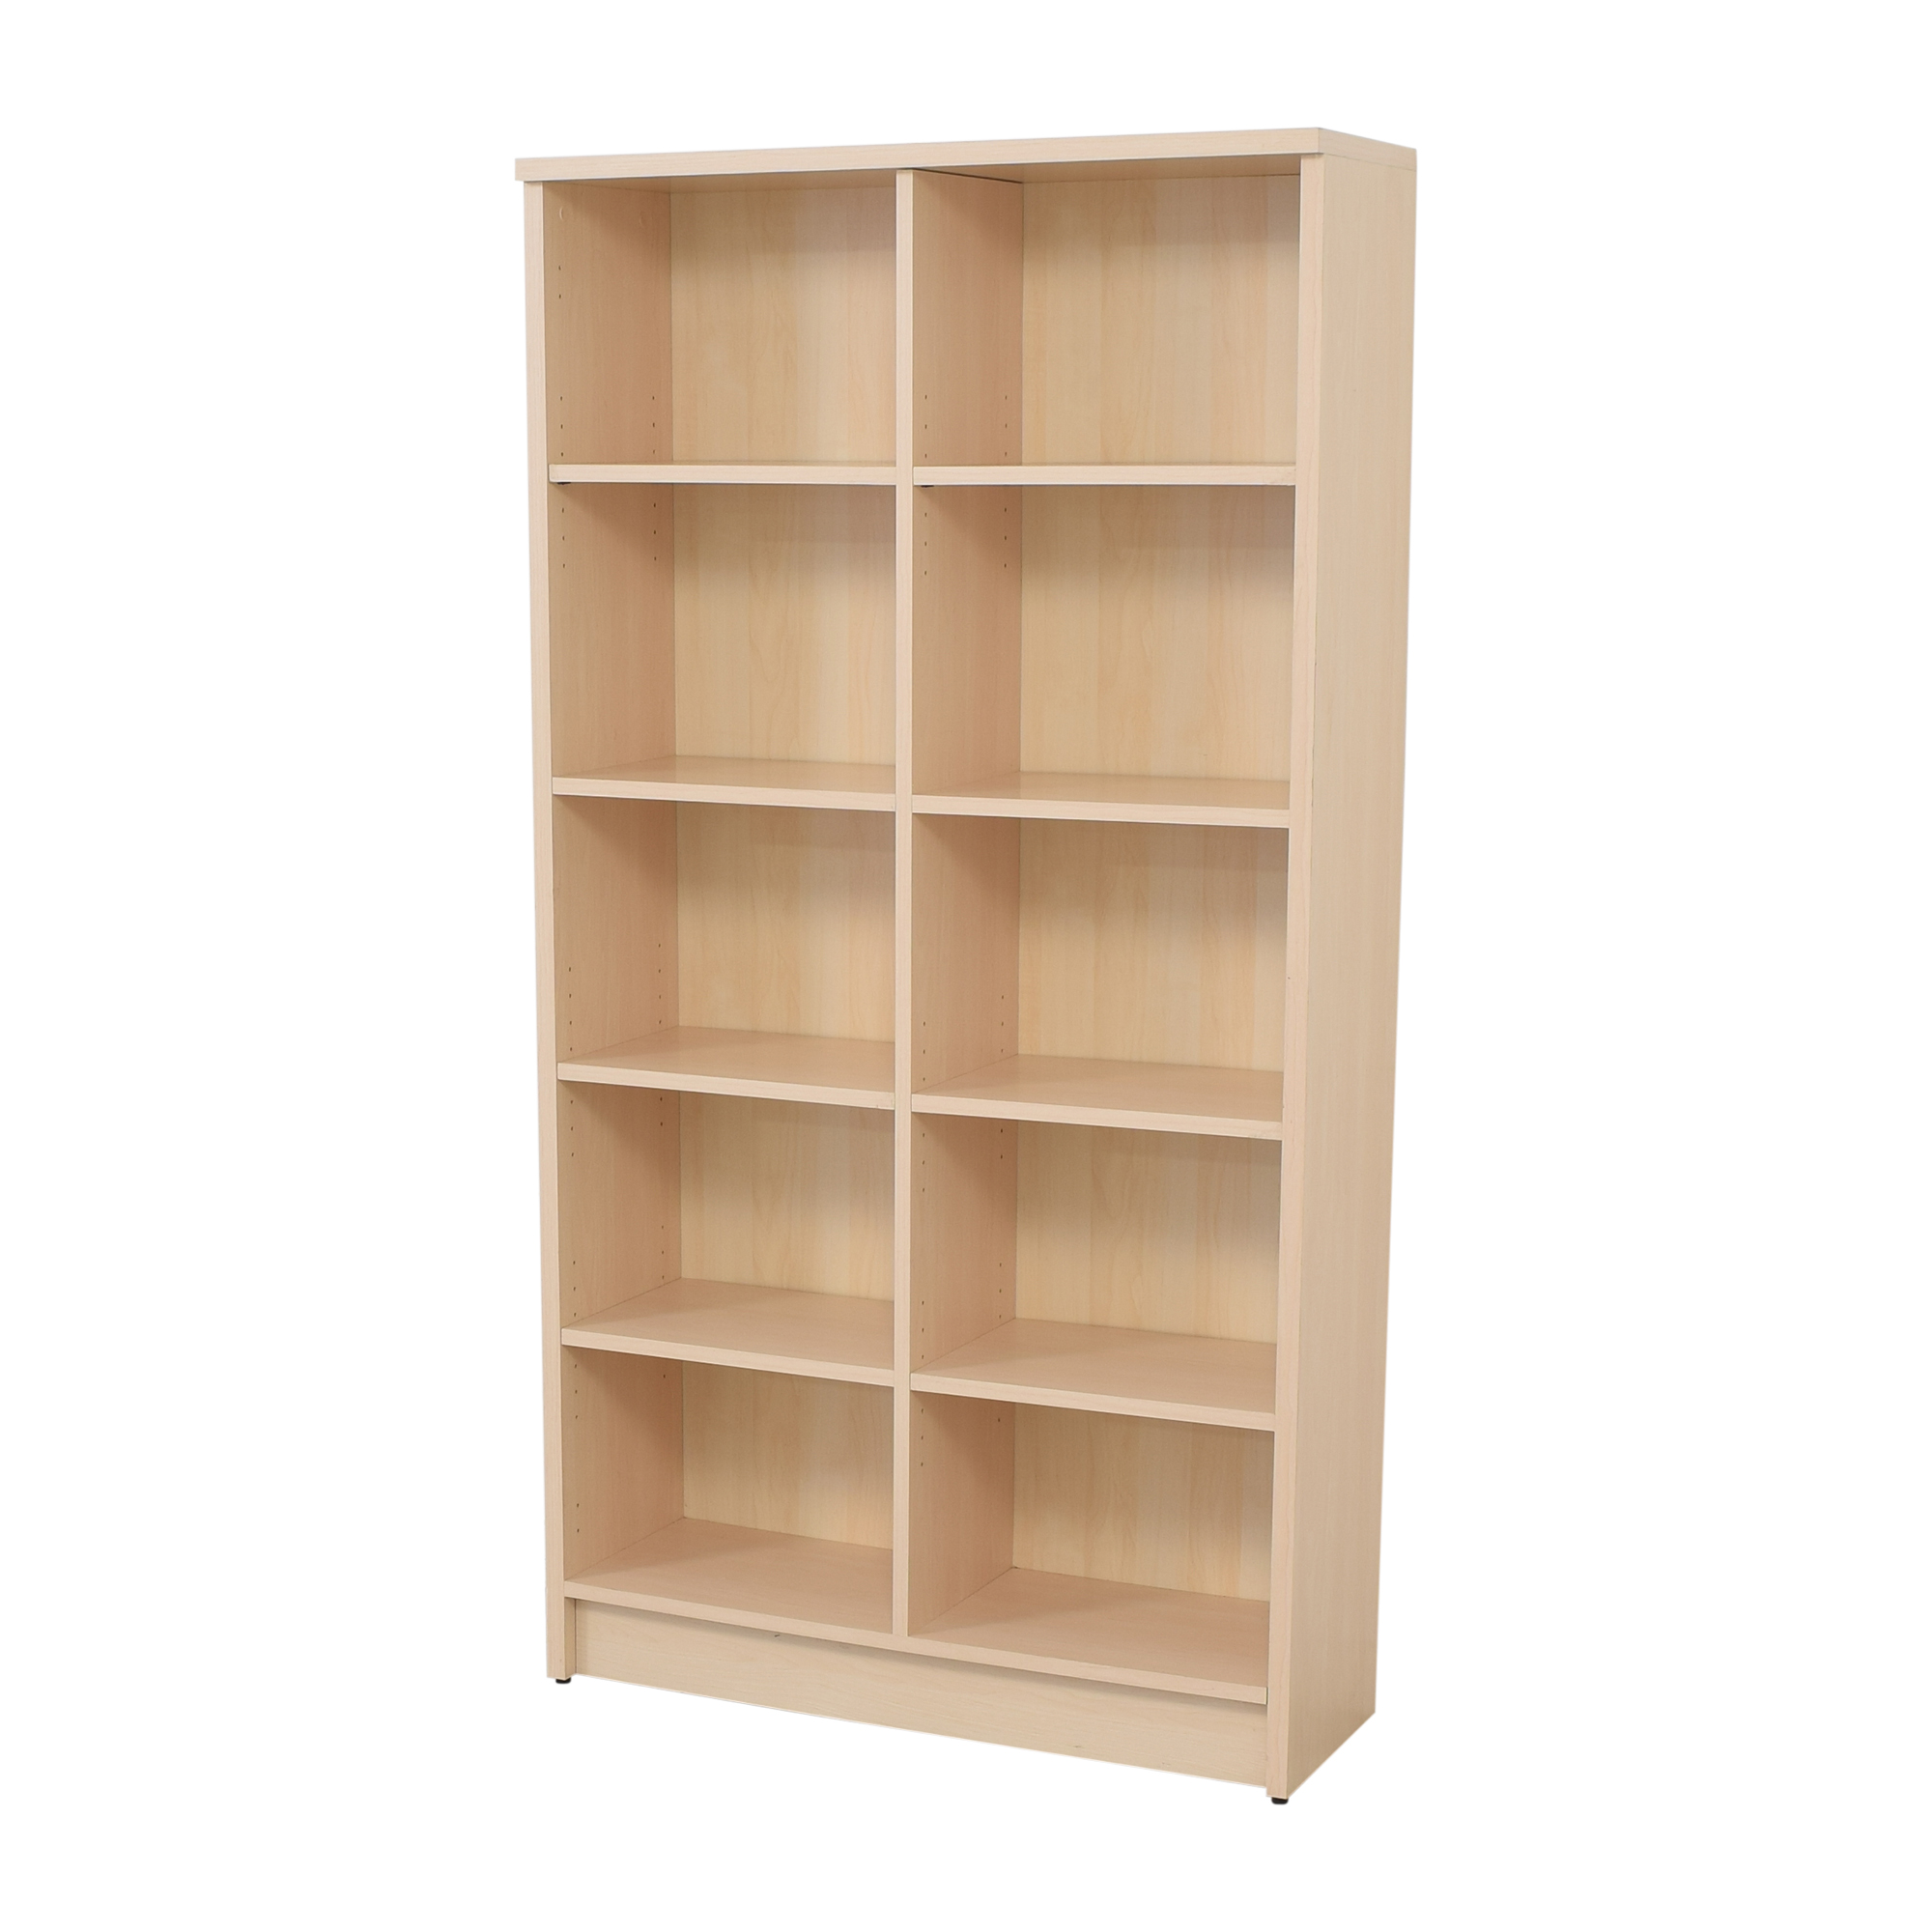 Danish Made Bookcase ct